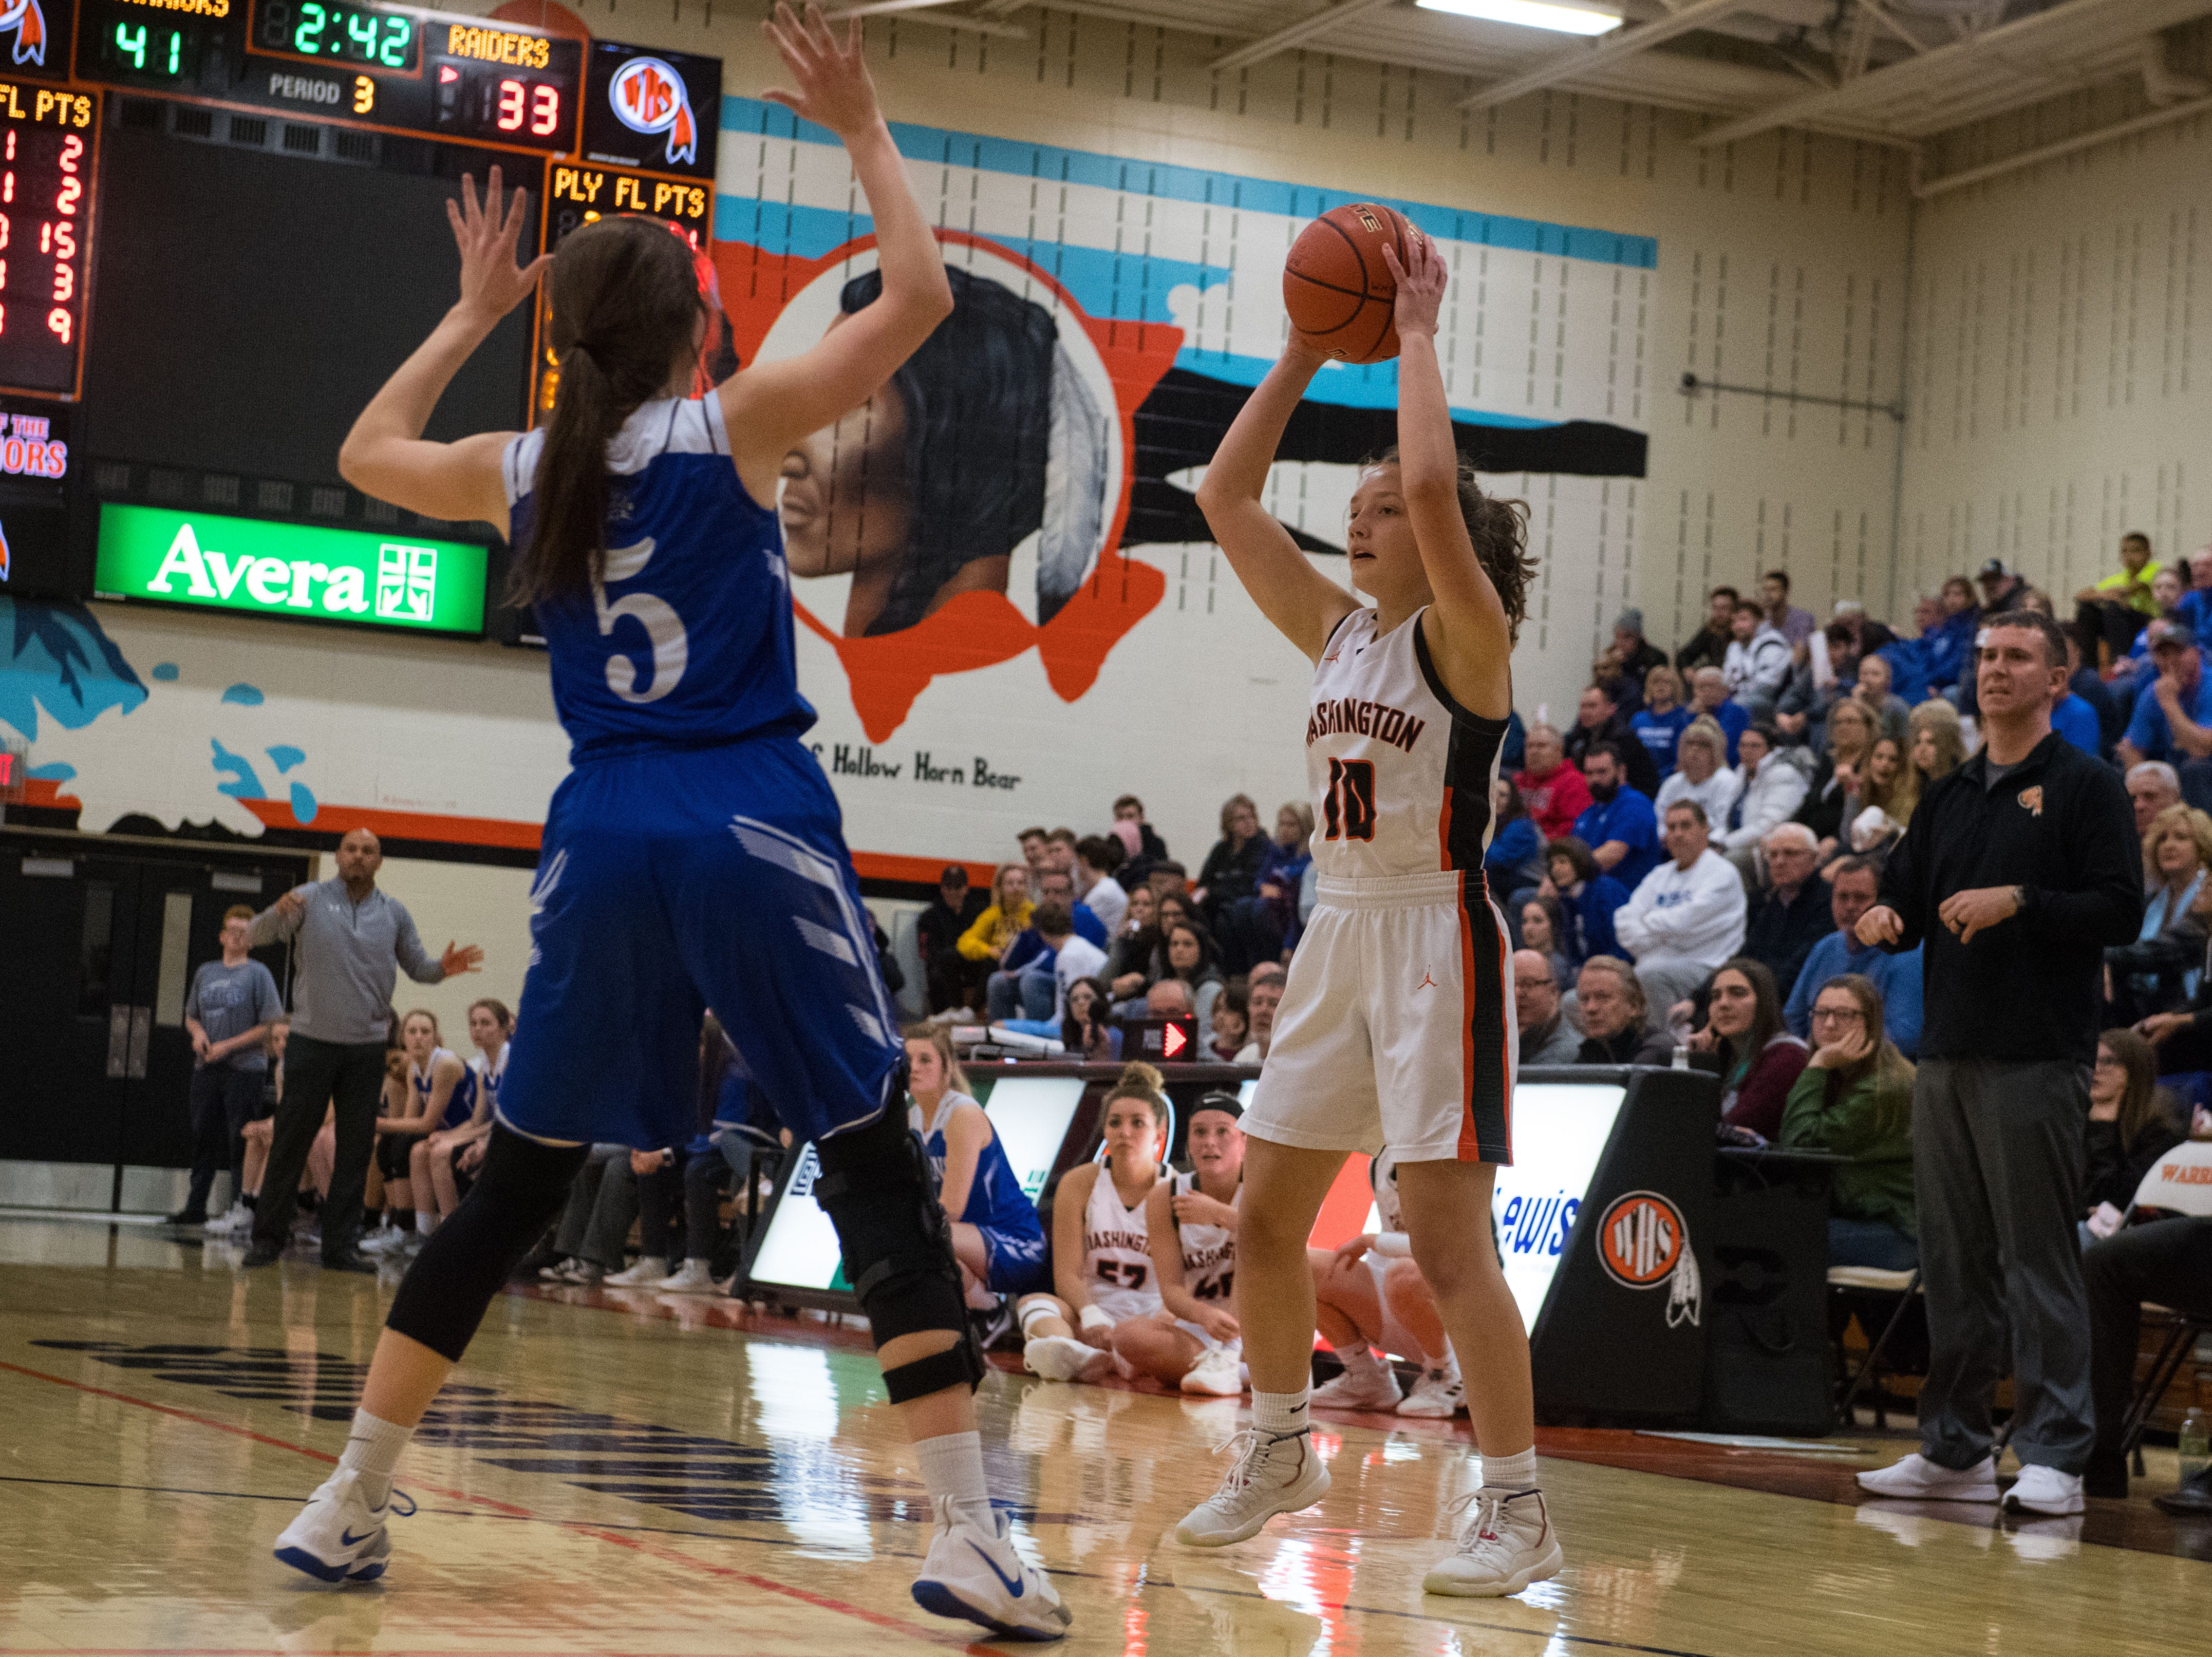 Washington's Eden Hullinger (10) looks to pass the ball during a game against Rapid City Stevens in Sioux Falls, S.D., Friday, Feb. 8, 2019.